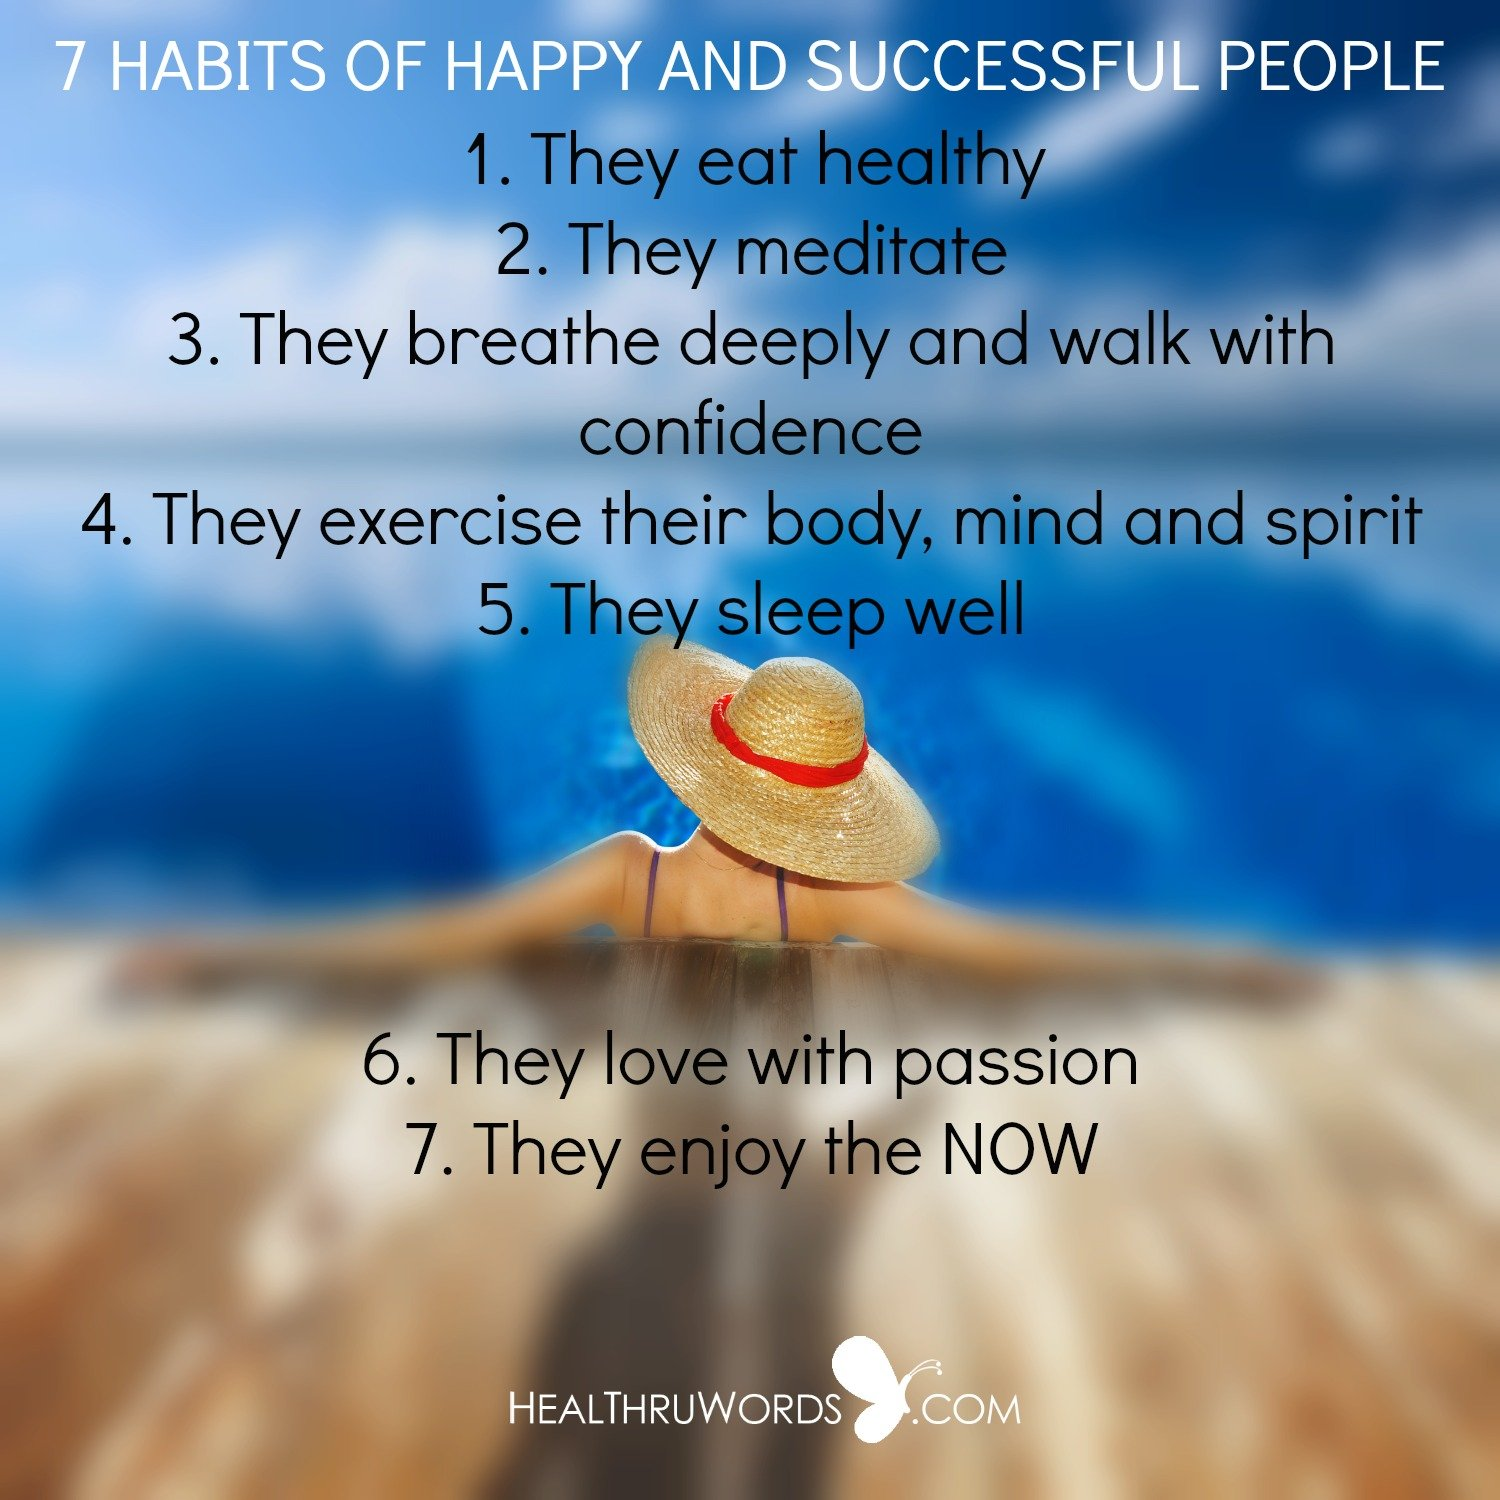 Inspirational Image: 7 Habits of Happy and Successful People